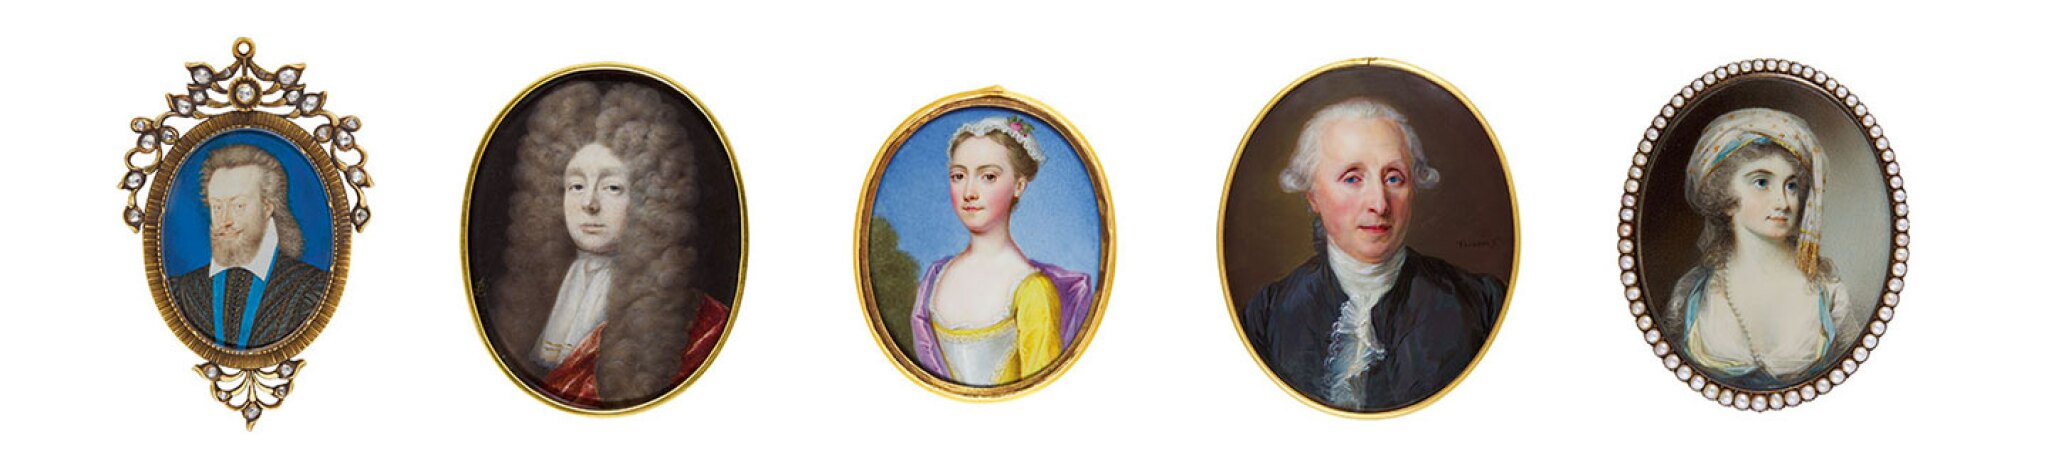 The Pohl-Ströher Collection of Portrait Miniatures, Part III